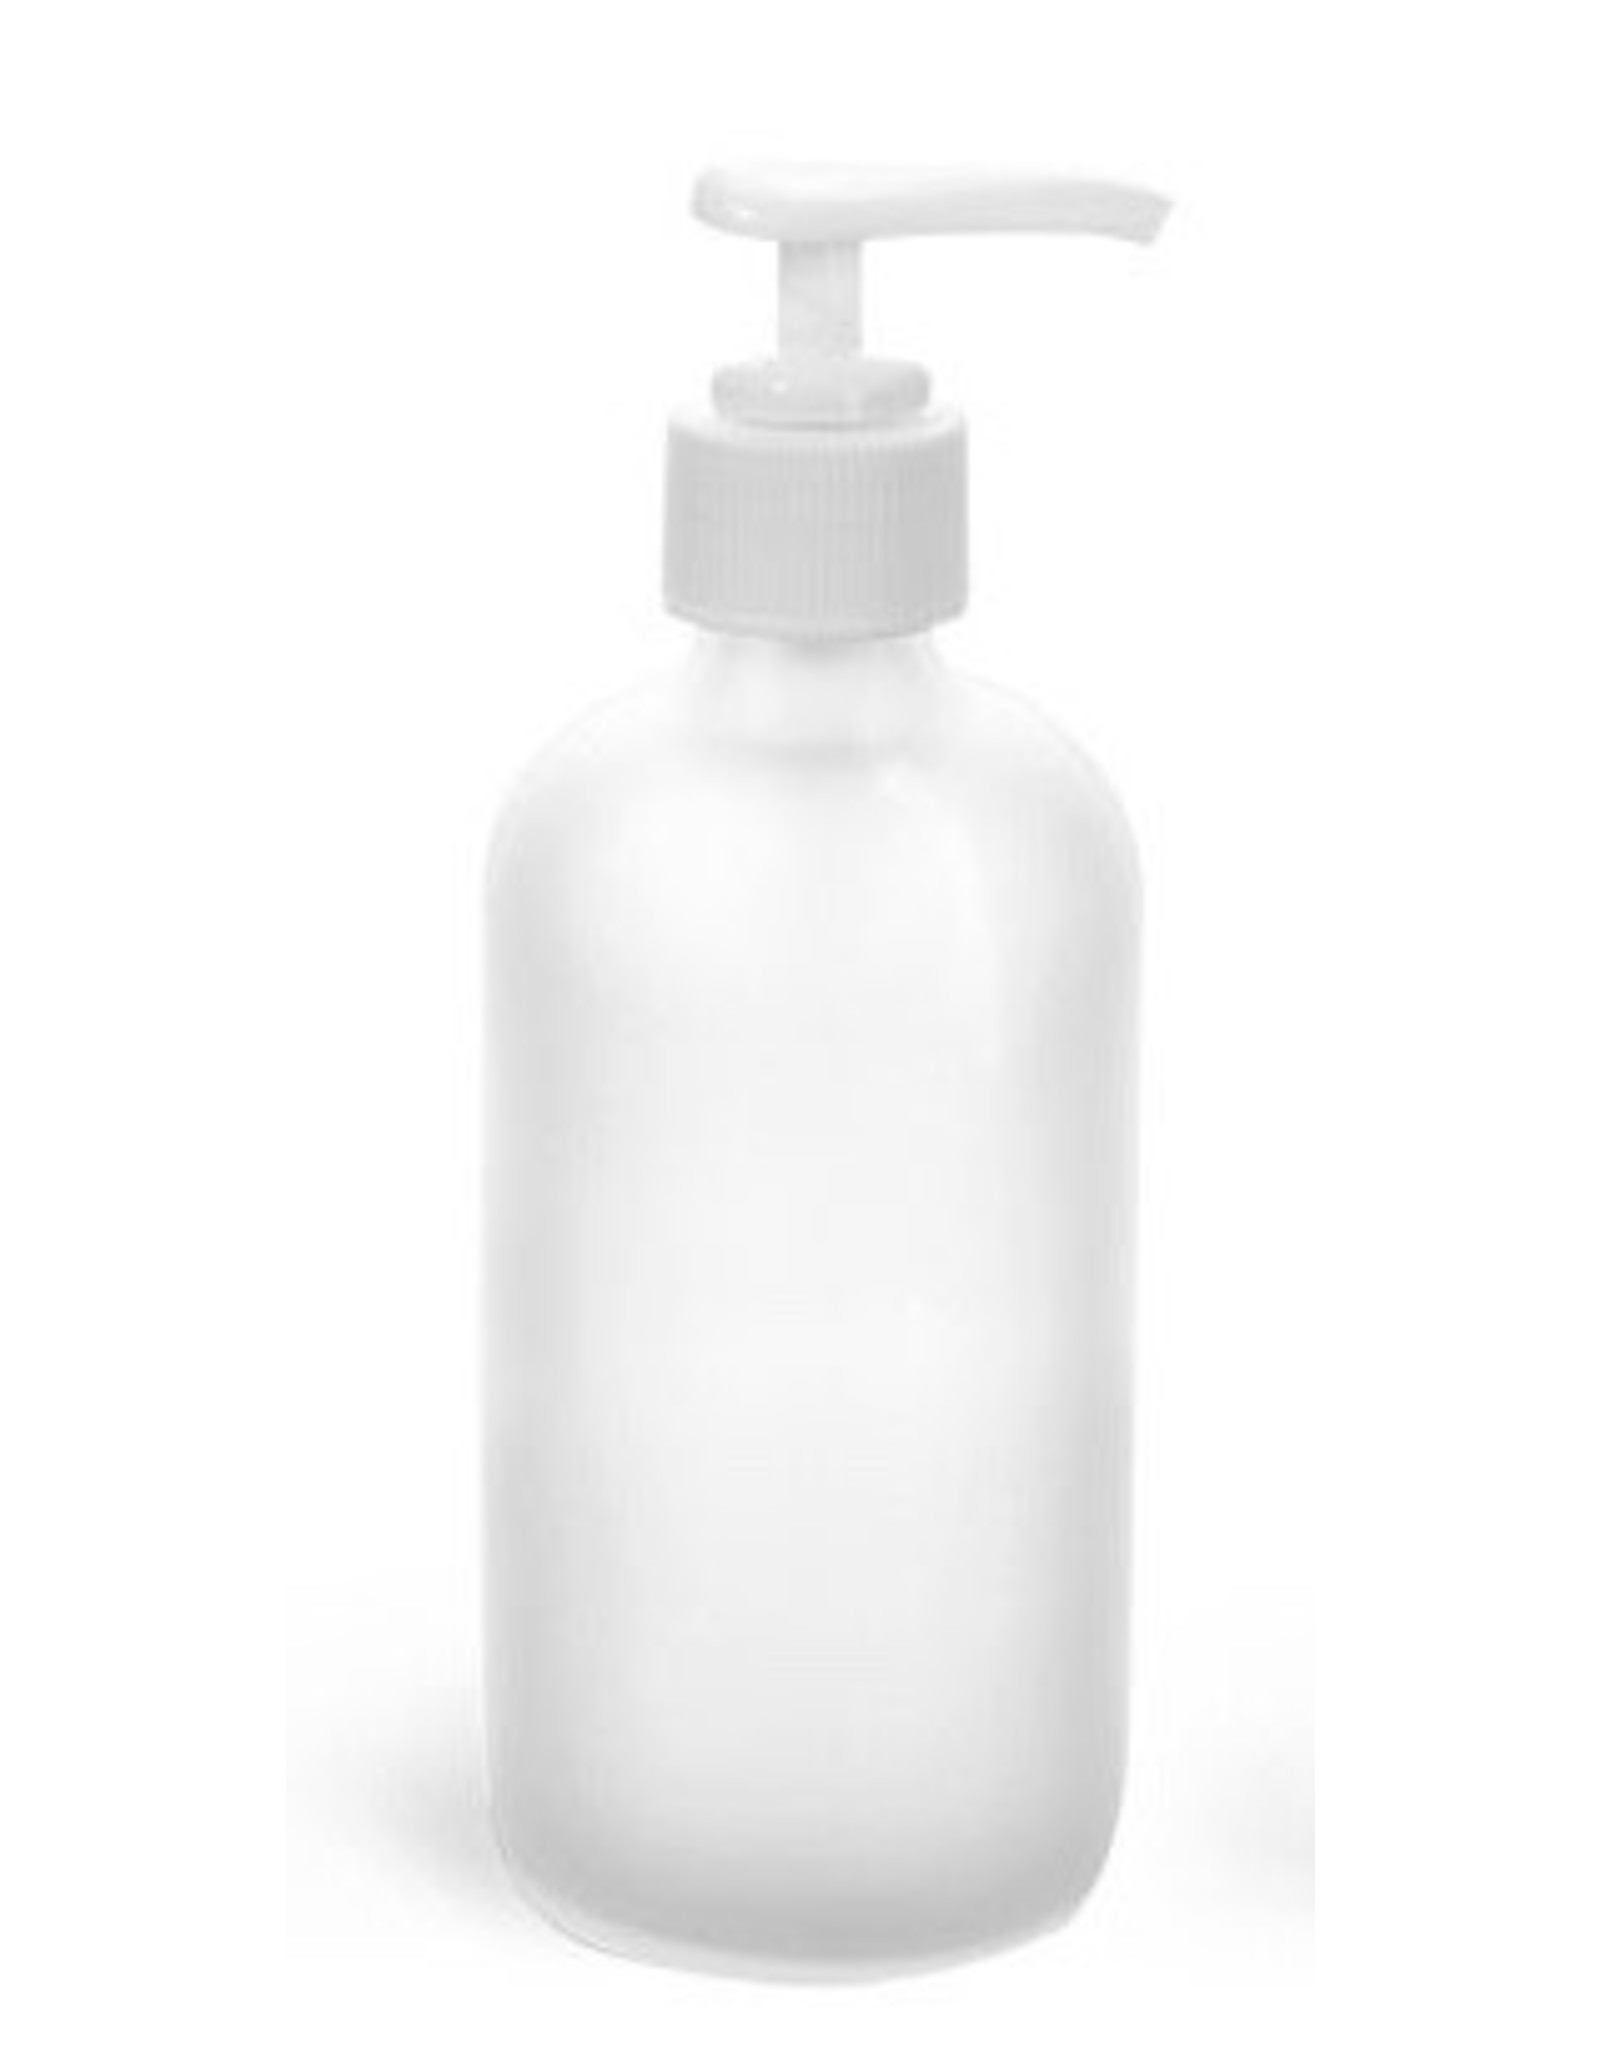 Garden City Essentials 8 oz Glass Bottle with Pump - Frosted